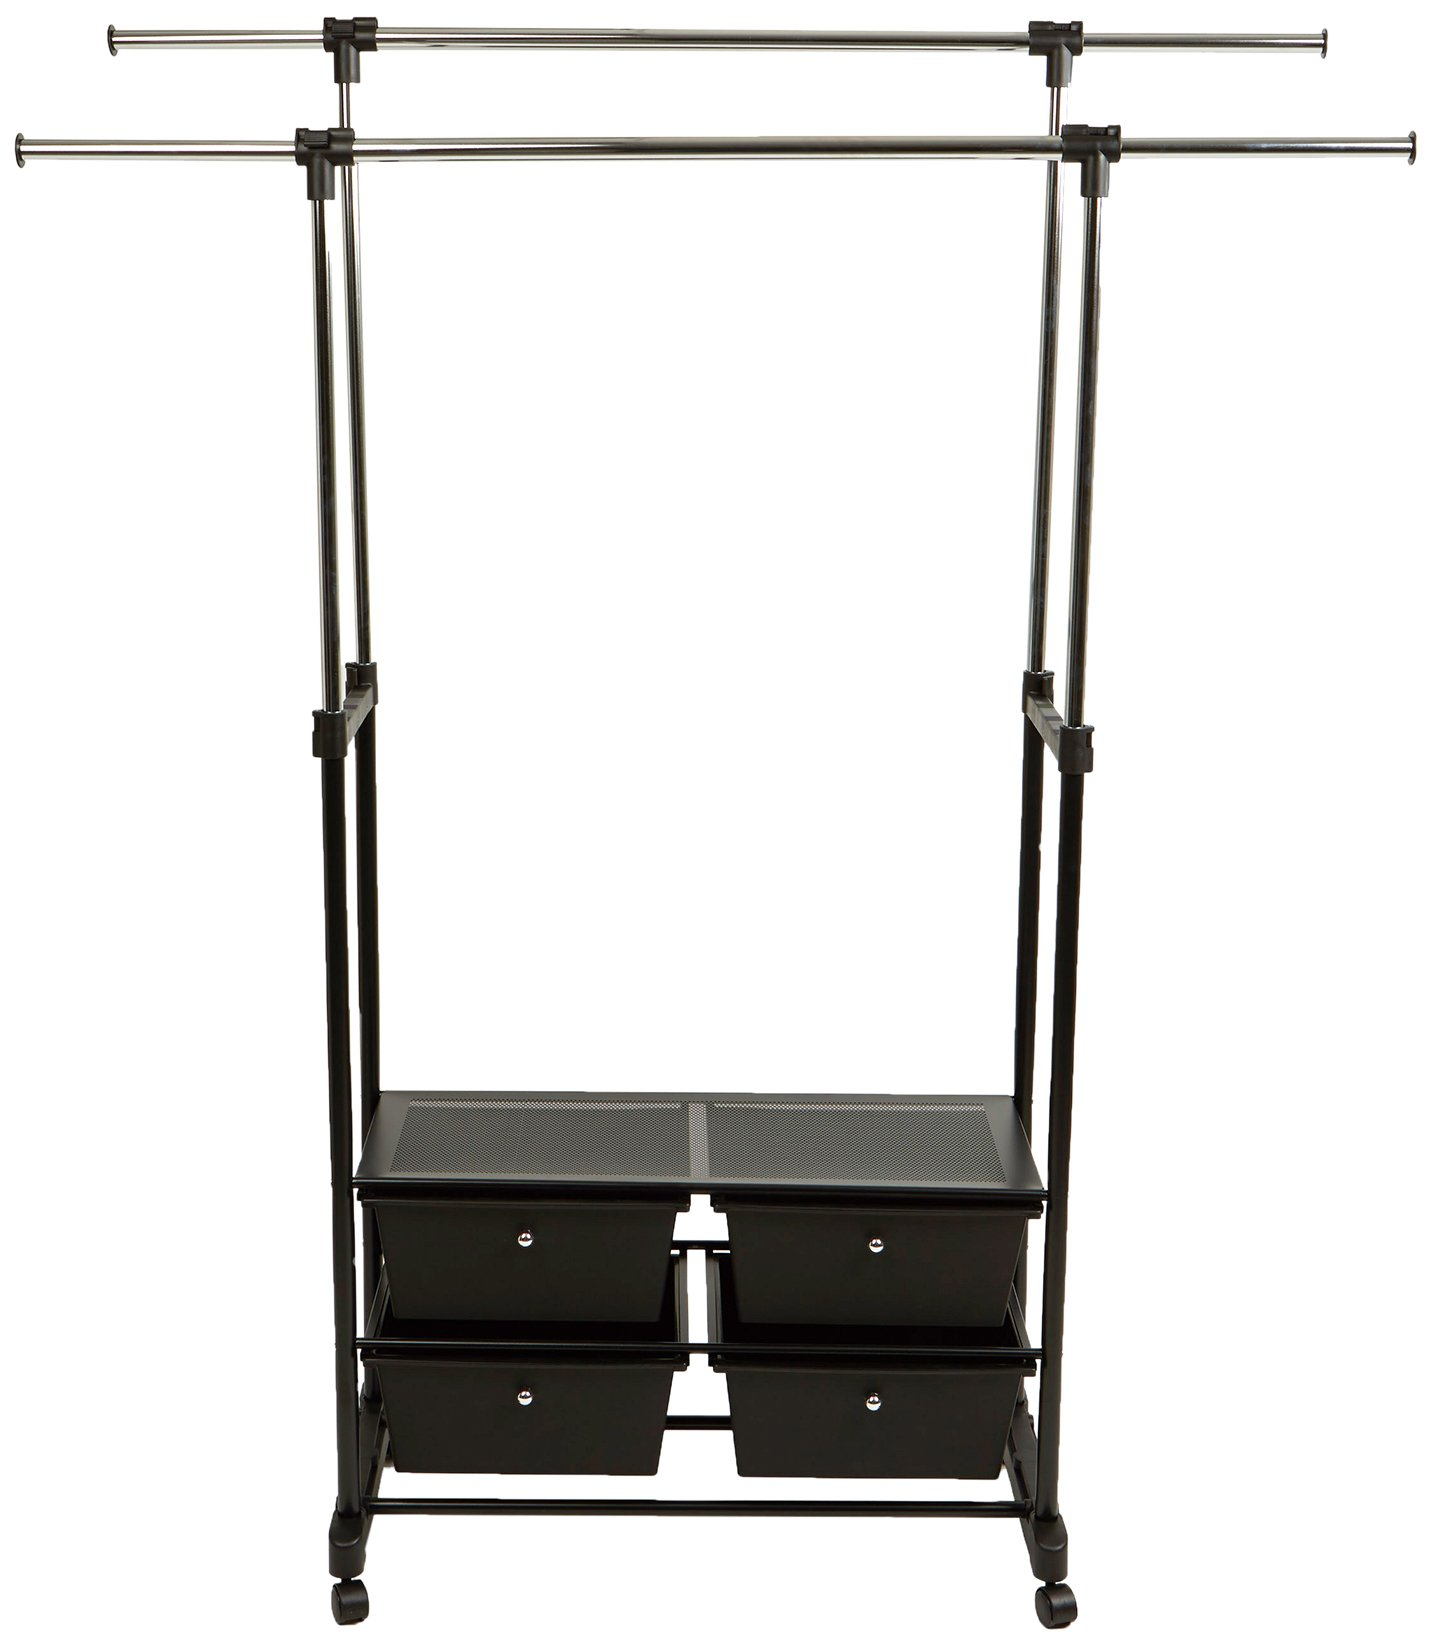 Mind Reader Double Rail Clothing Garment Rack with 4 Bottom Drawers for Storage, Commercial Grade, Heavy Duty, Black